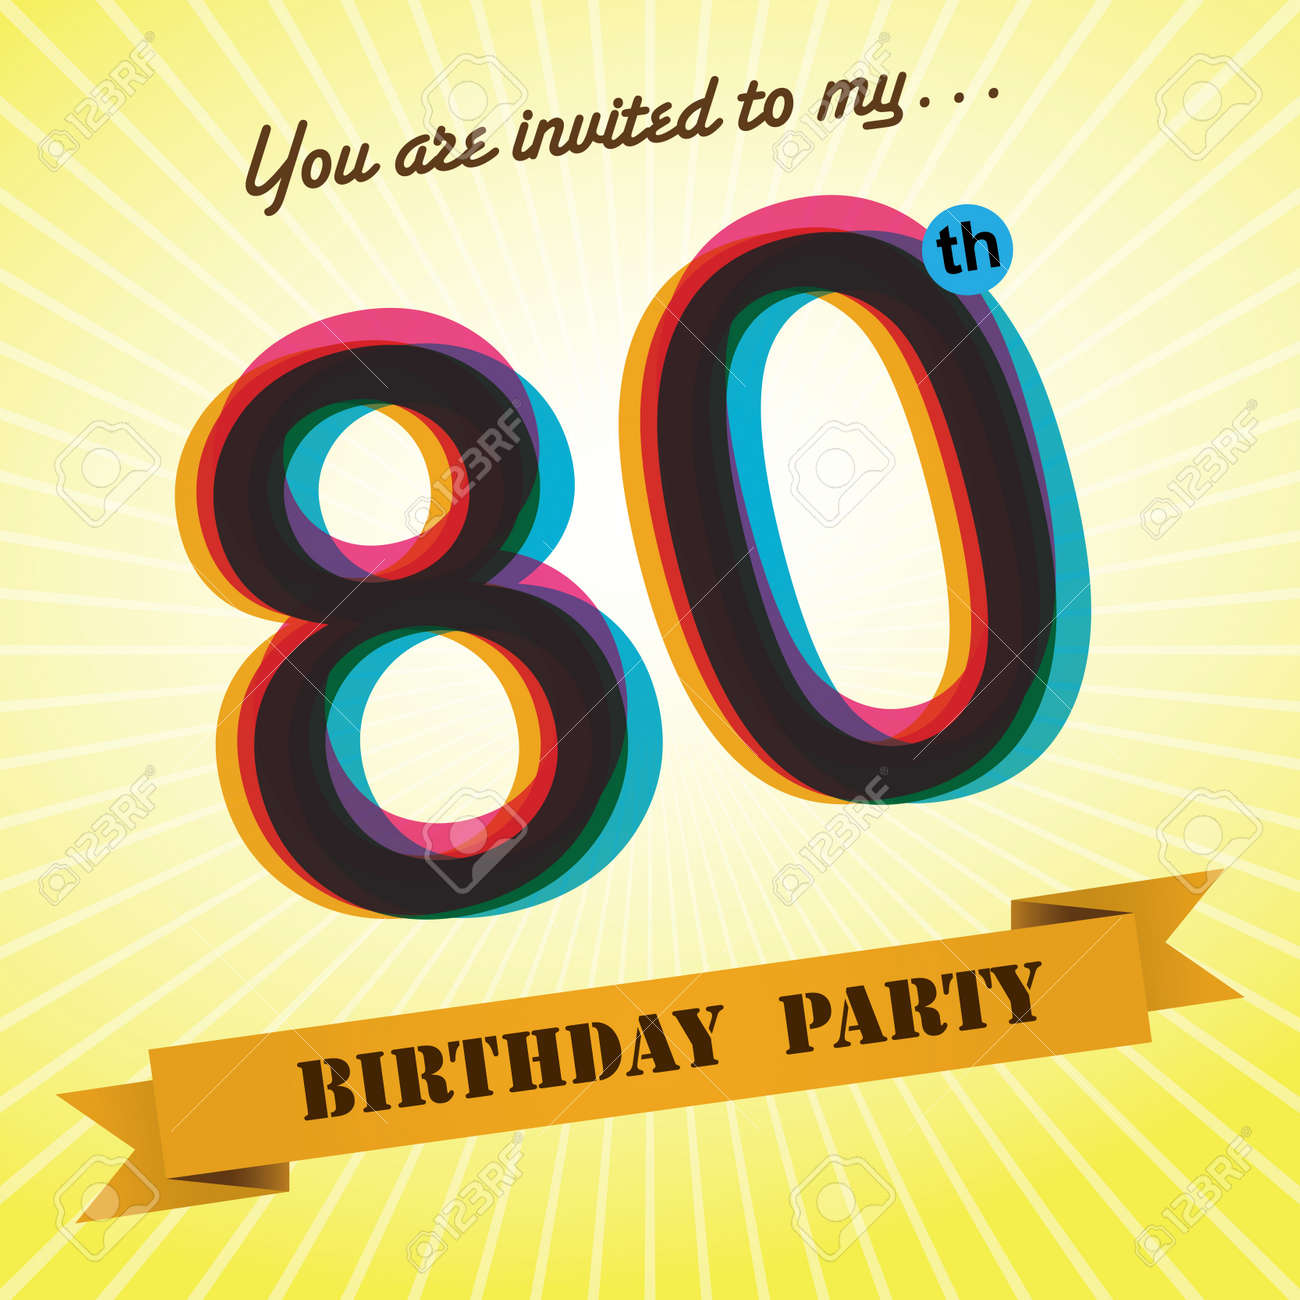 80th Birthday Party Invite Template Design Retro Style